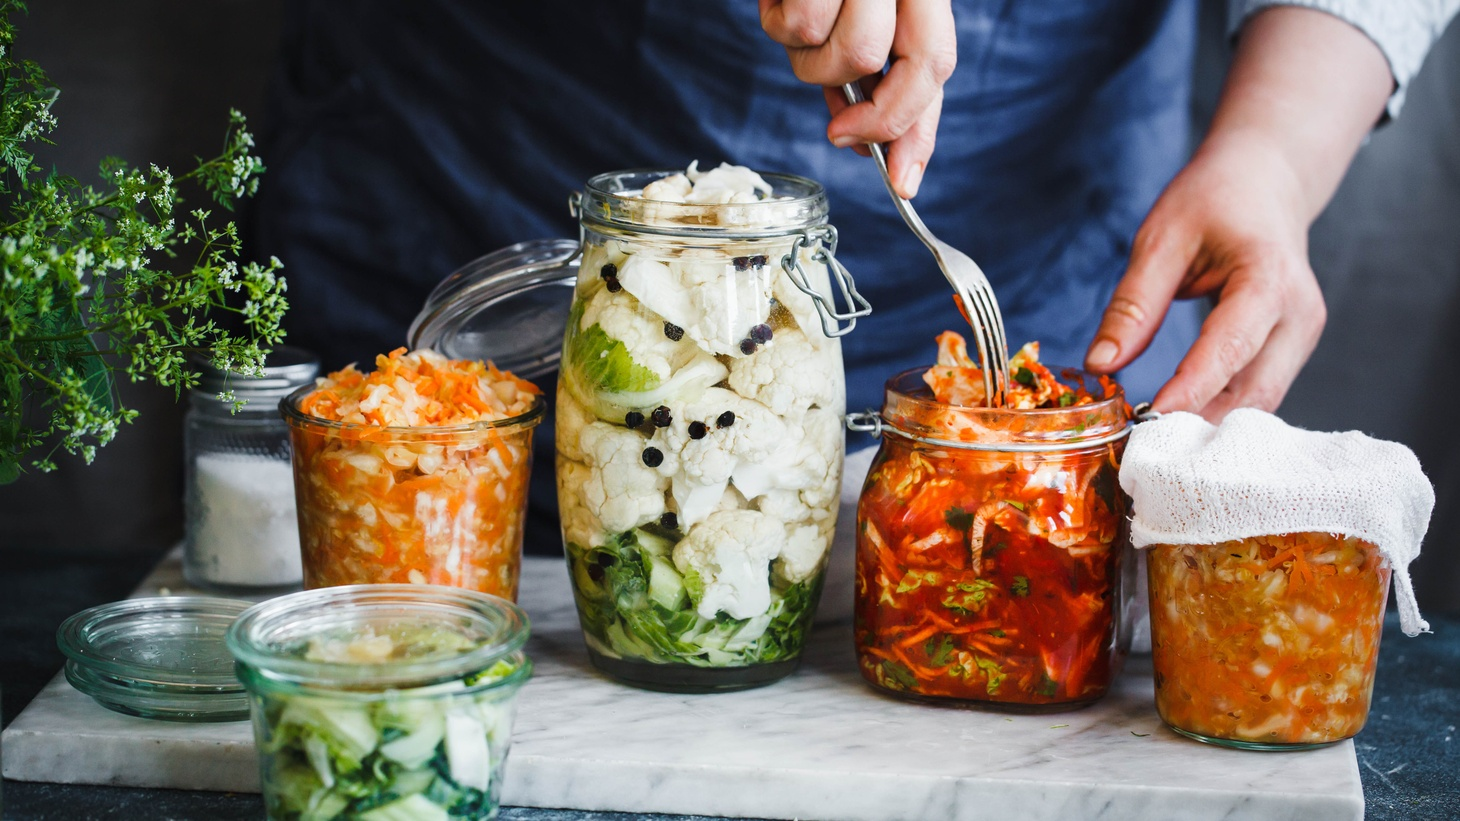 The process of pickling and fermentation can transform a vegetable's taste, says KCRW's Evan Kleiman.